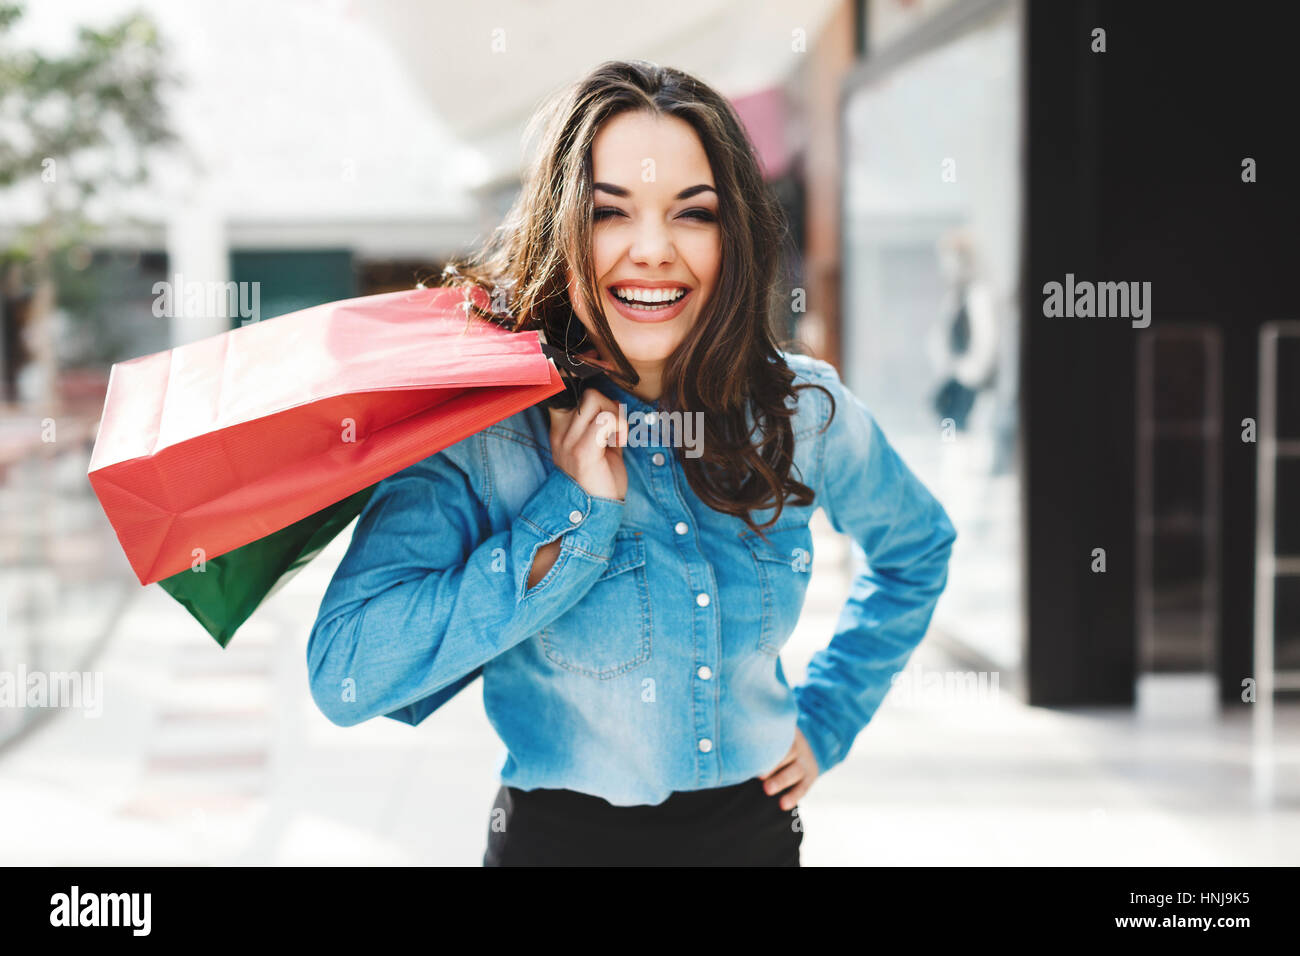 3907bbabb2 Happy Girl In Blue Jeans Stock Photos   Happy Girl In Blue Jeans ...